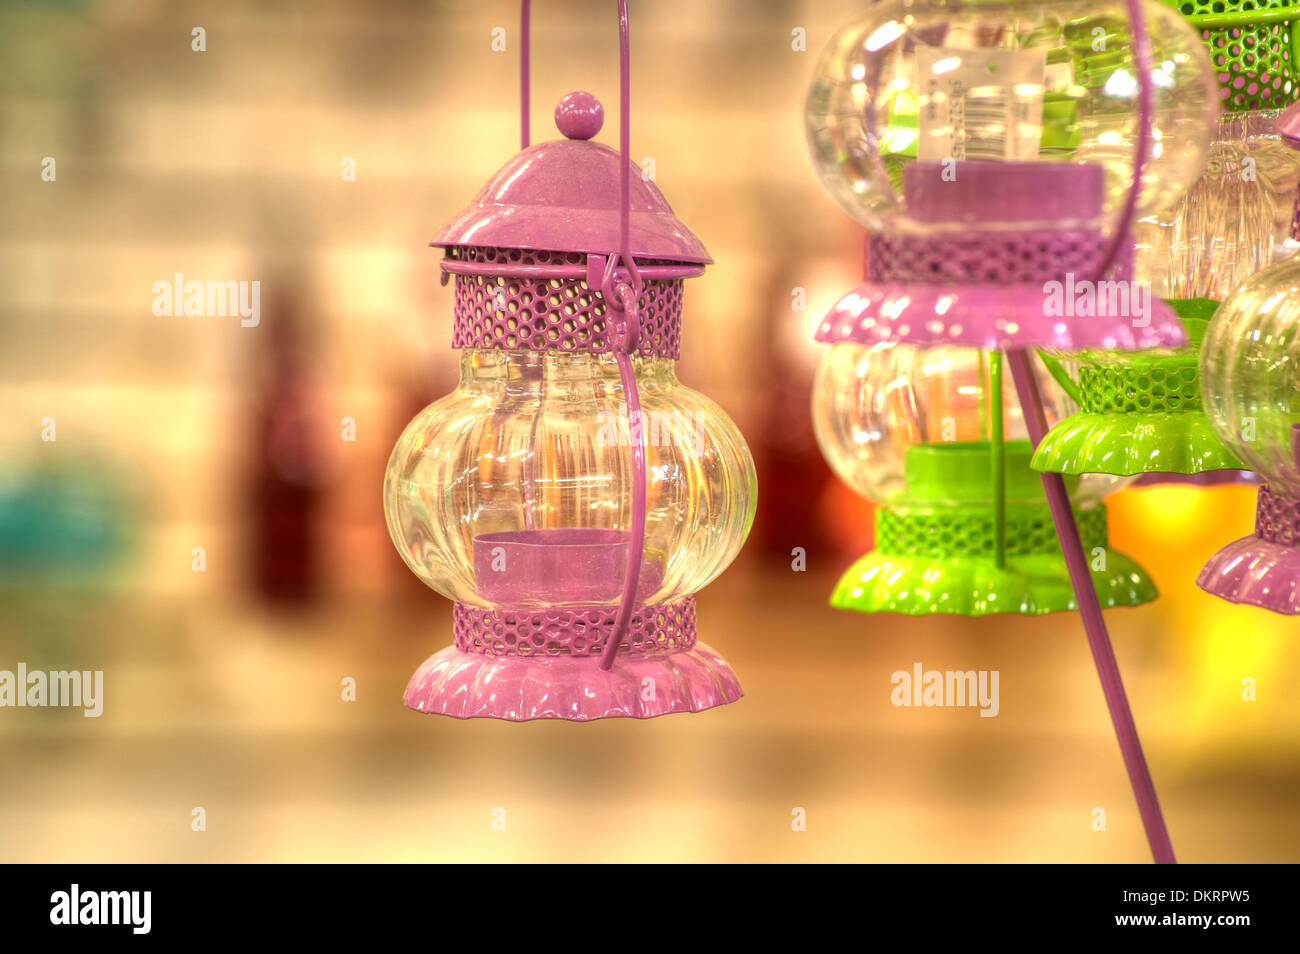 Decorative glass hanging lanterns and bottles - Stock Image